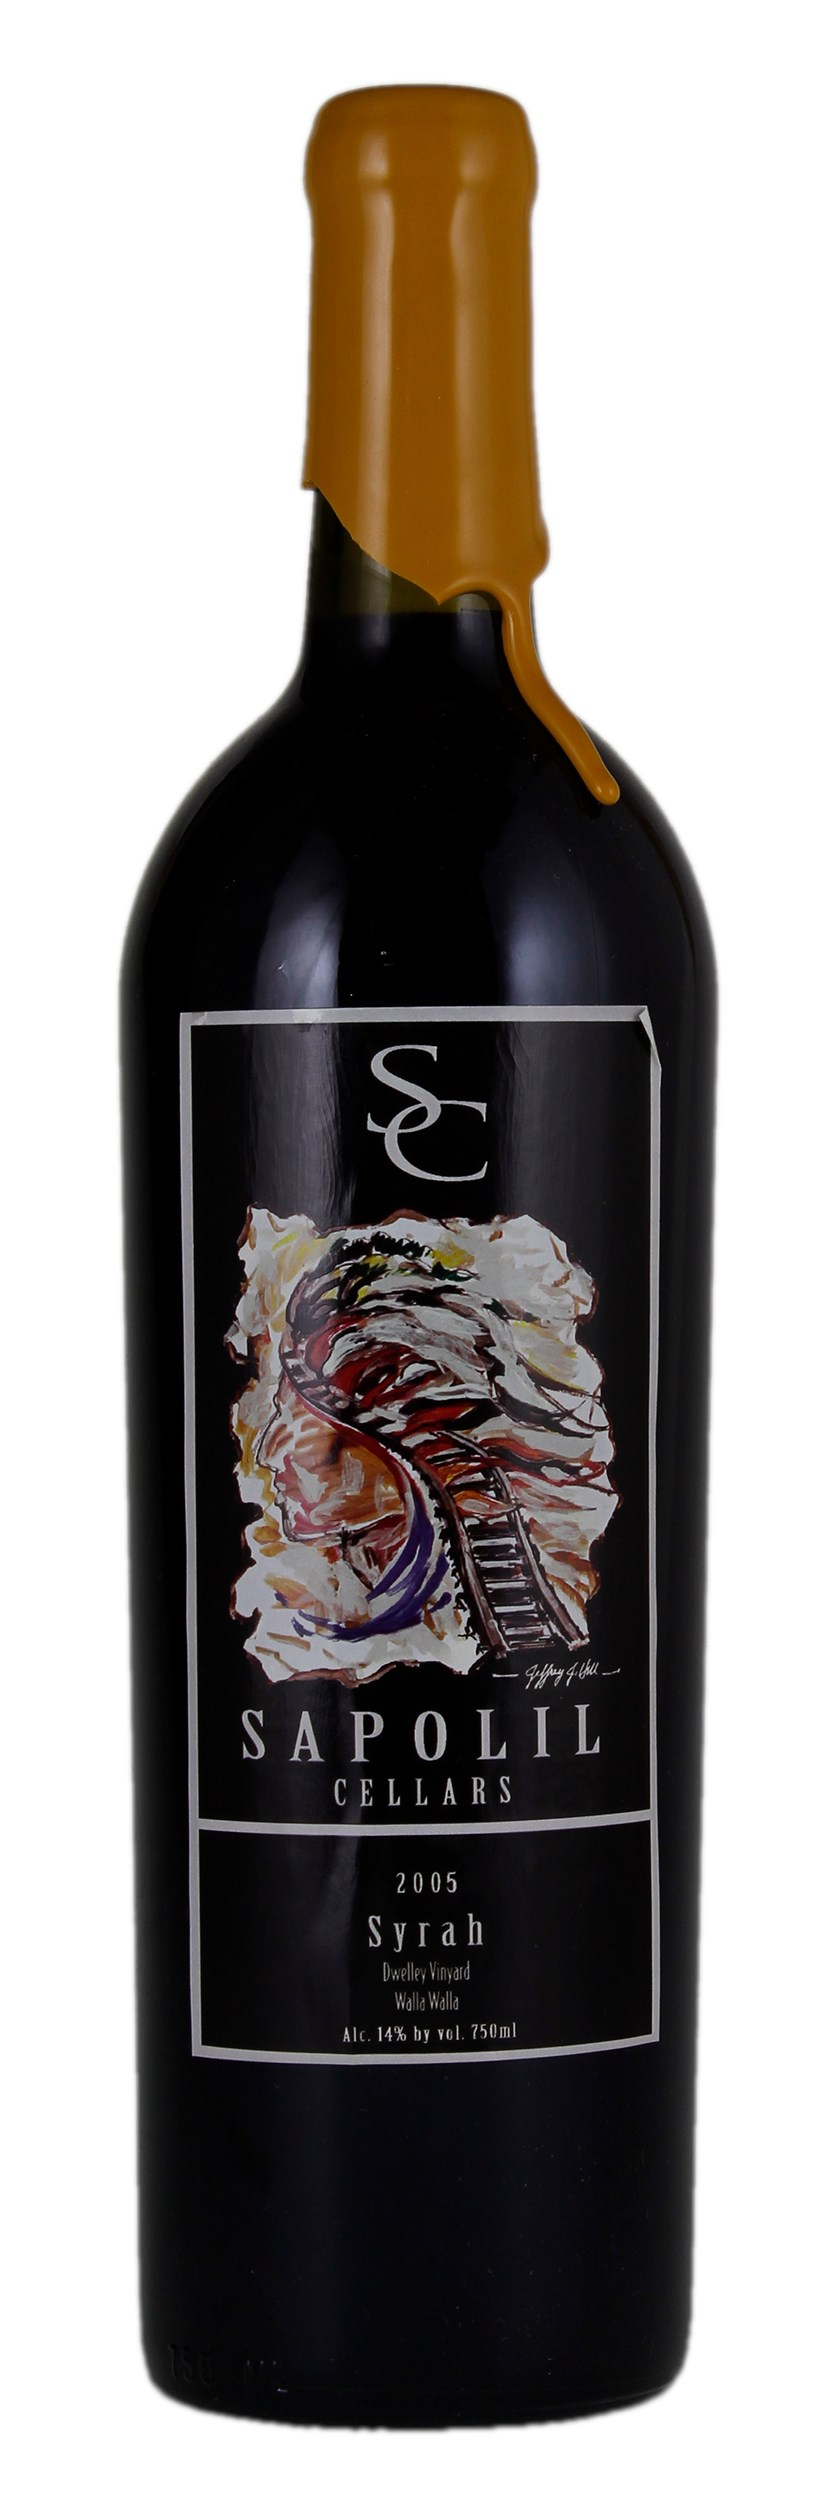 /BuyWine/Item/Auction/1178508/2005-Sapolil-Cellars-Dwelley-Vineyard-Syrah.  sc 1 st  WineBid & Sapolil Cellars Dwelley Vineyard Syrah 2005 Red Wine from United ...